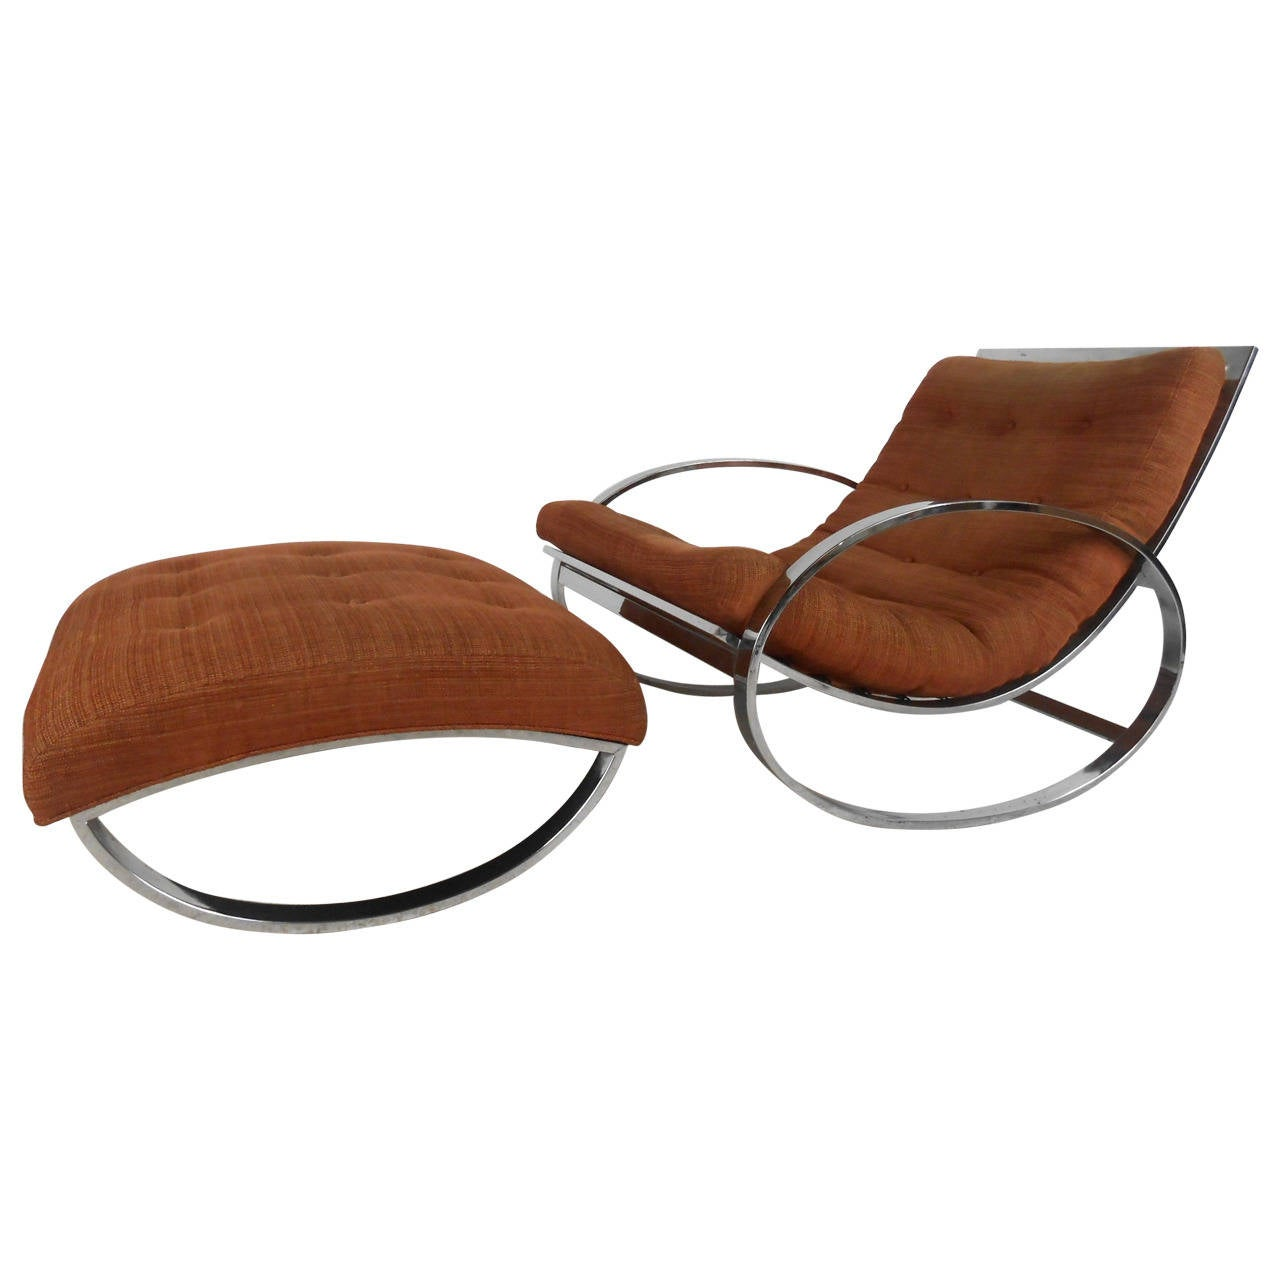 Milo Baughman Style Mid-Century Modern Renato Zevi Ellipse Chair and Ottoman For Sale